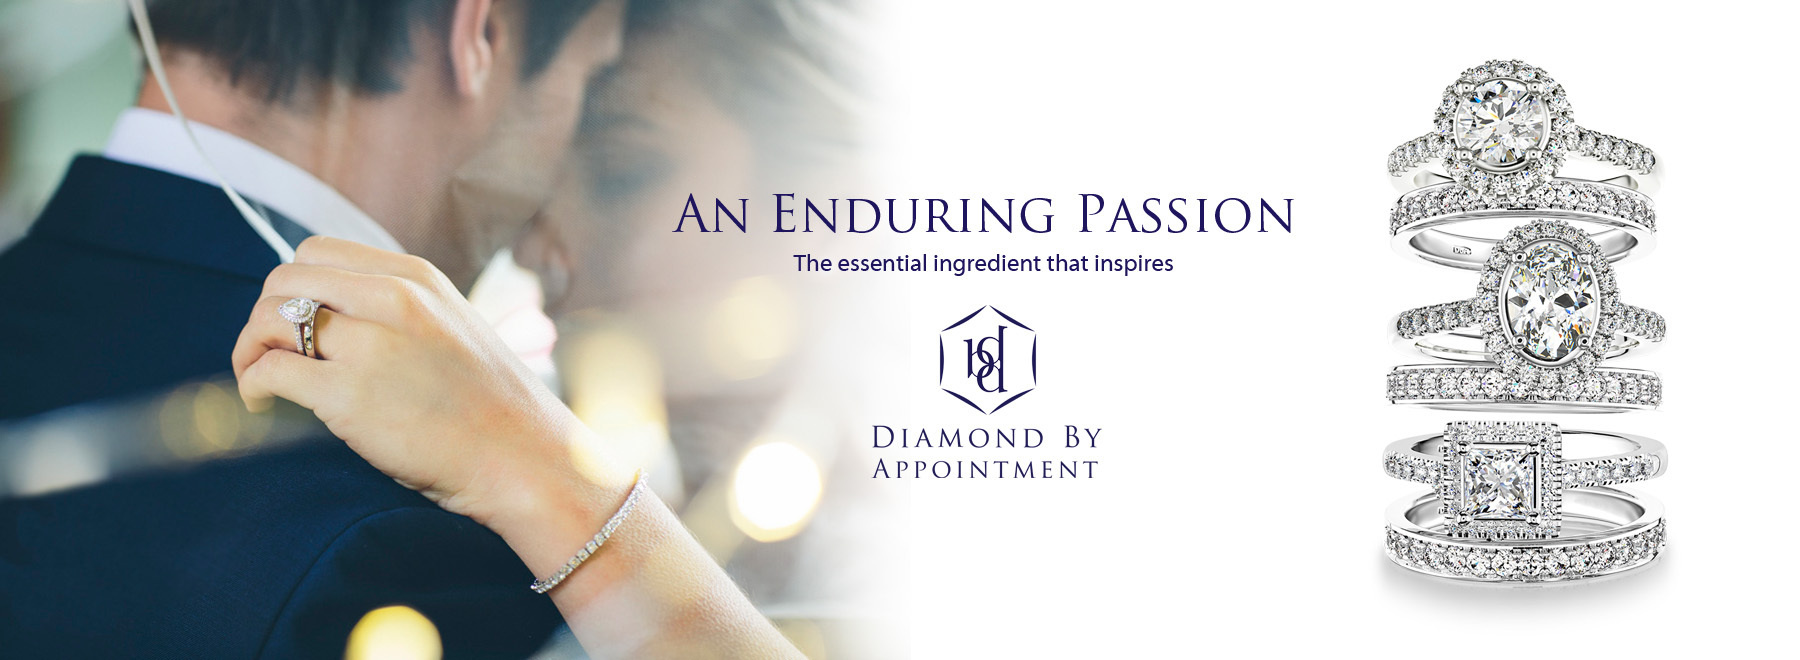 Diamonds by Appointment